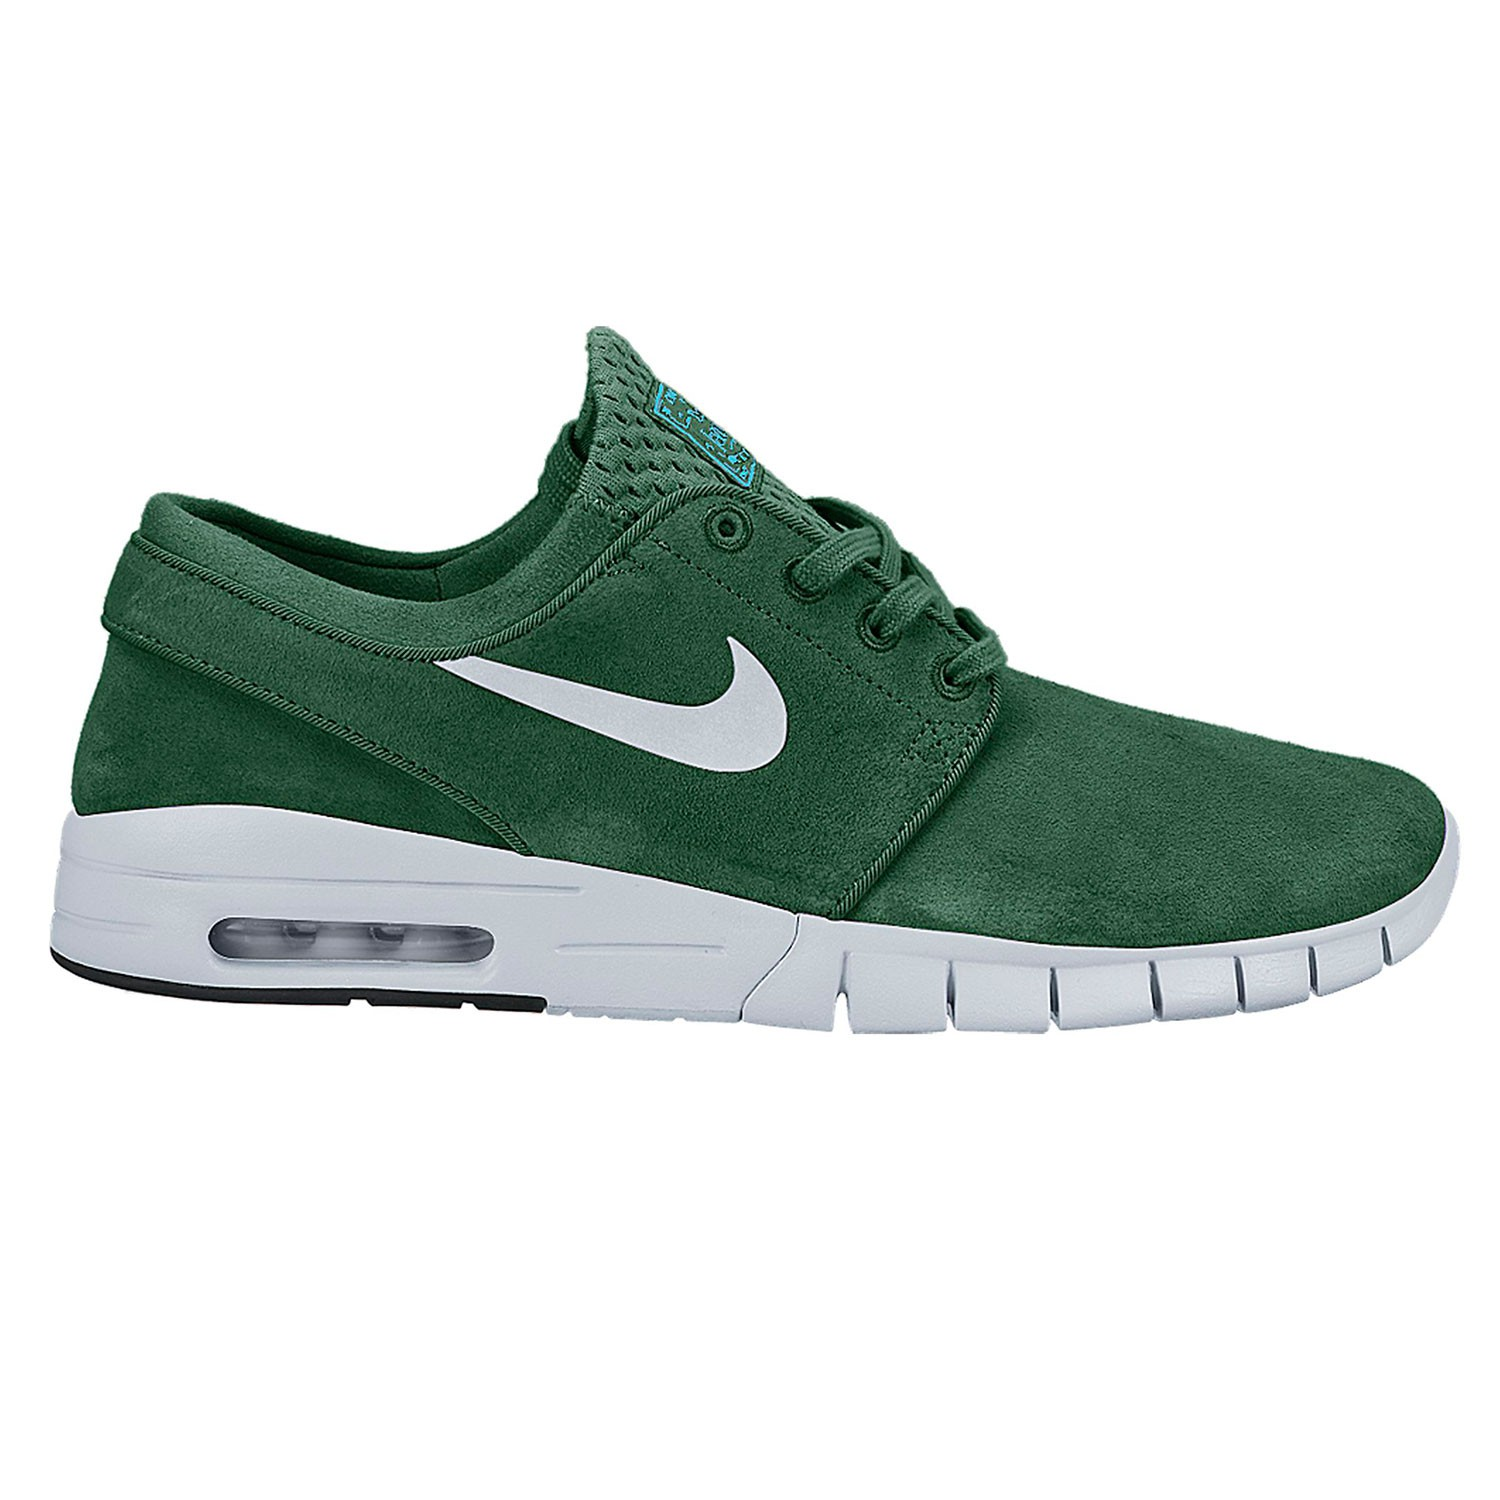 nike sb stefan janoski max suede gorge green mtllc slvr. Black Bedroom Furniture Sets. Home Design Ideas